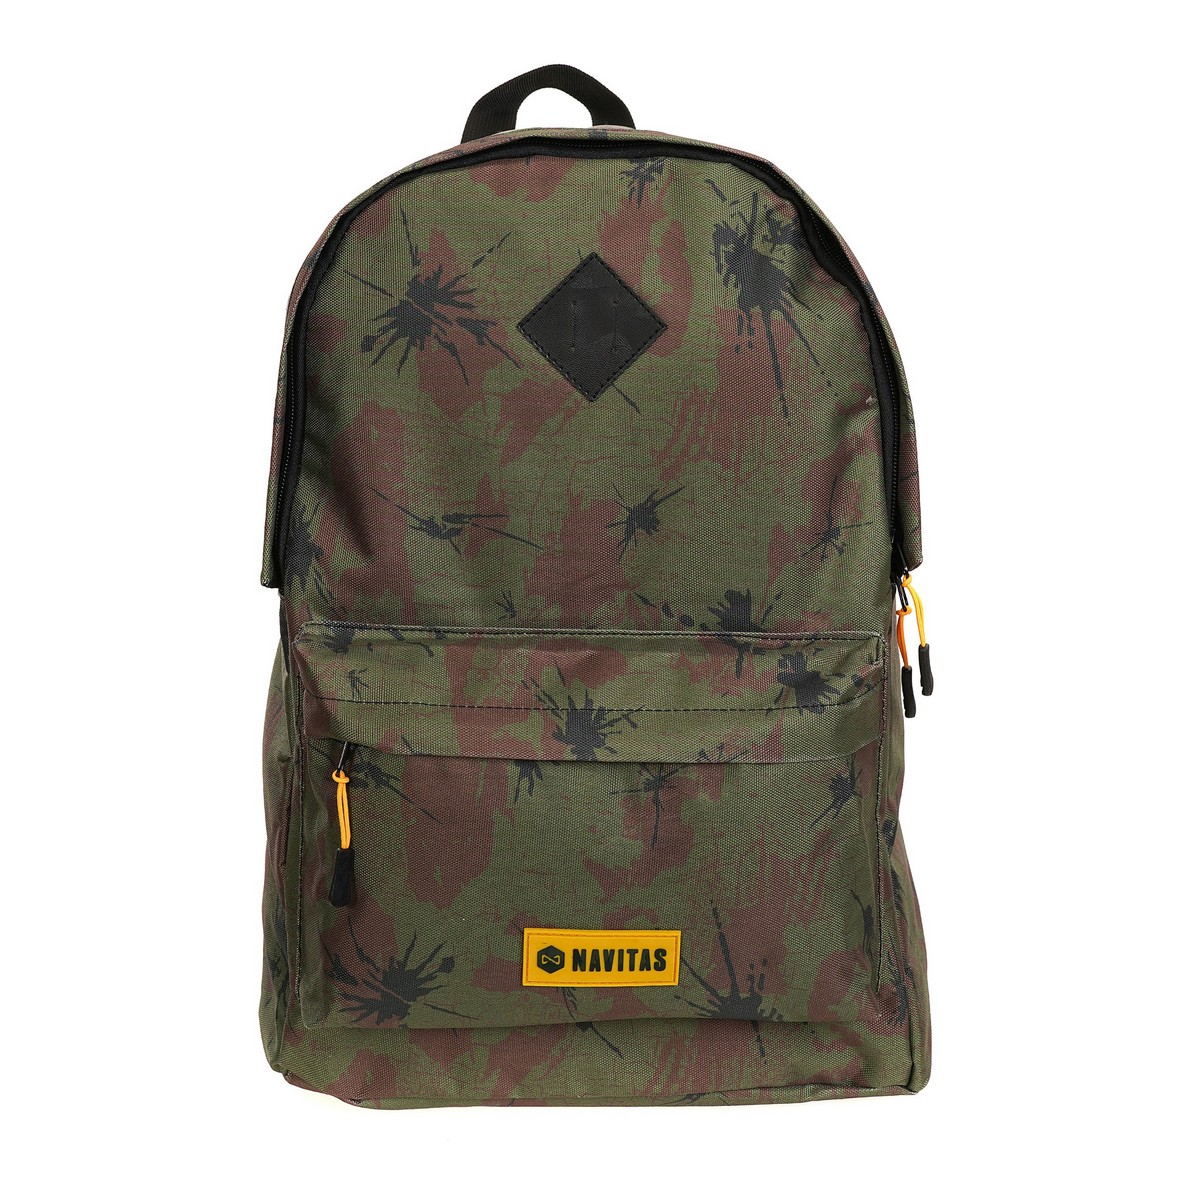 NAVITAS BACKPACK CAMO